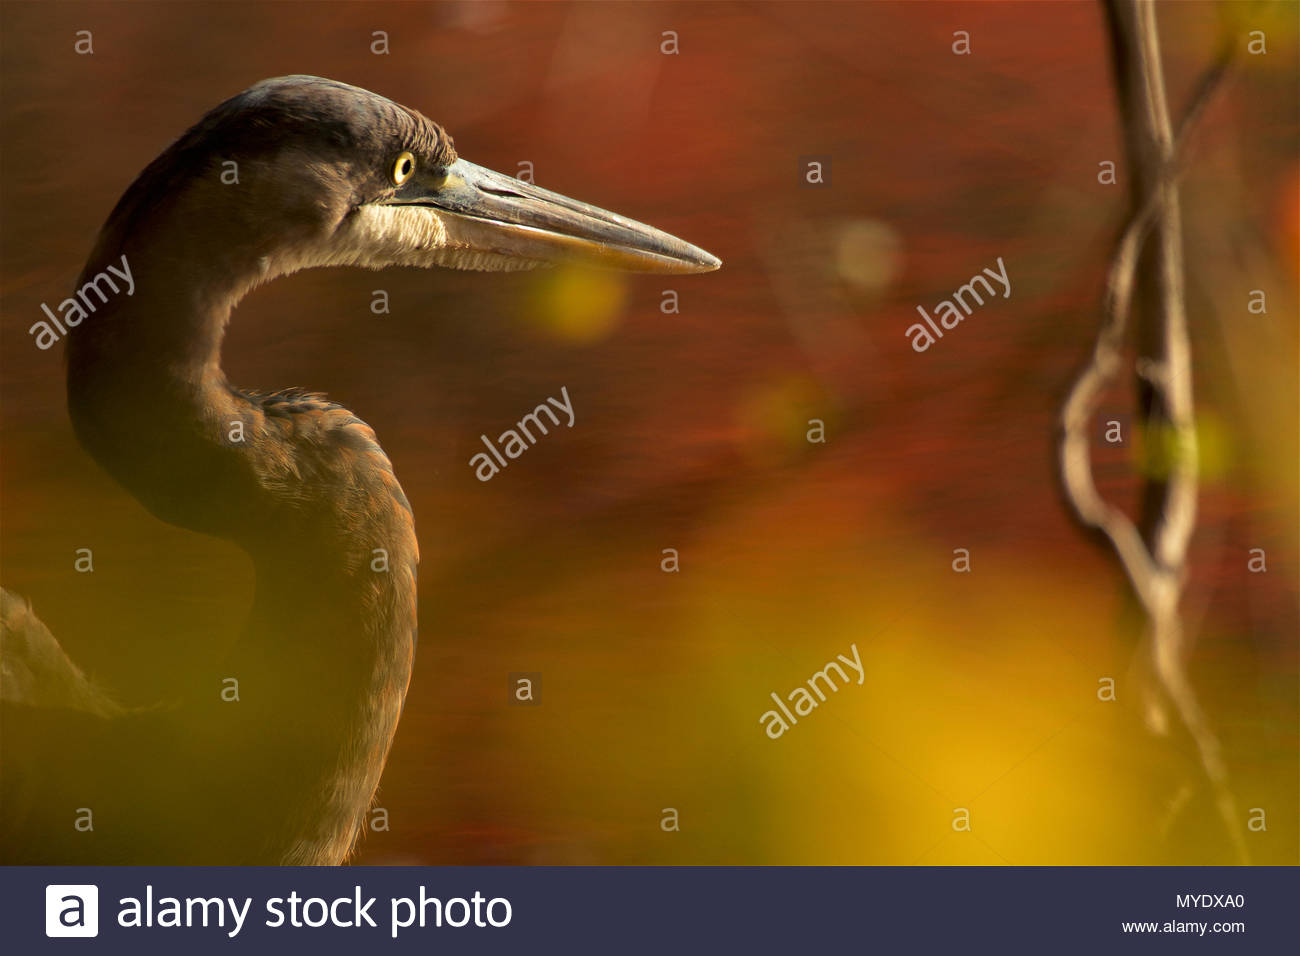 A side view portrait of a great blue heron, Ardea herodias,  though green foliage. - Stock Image